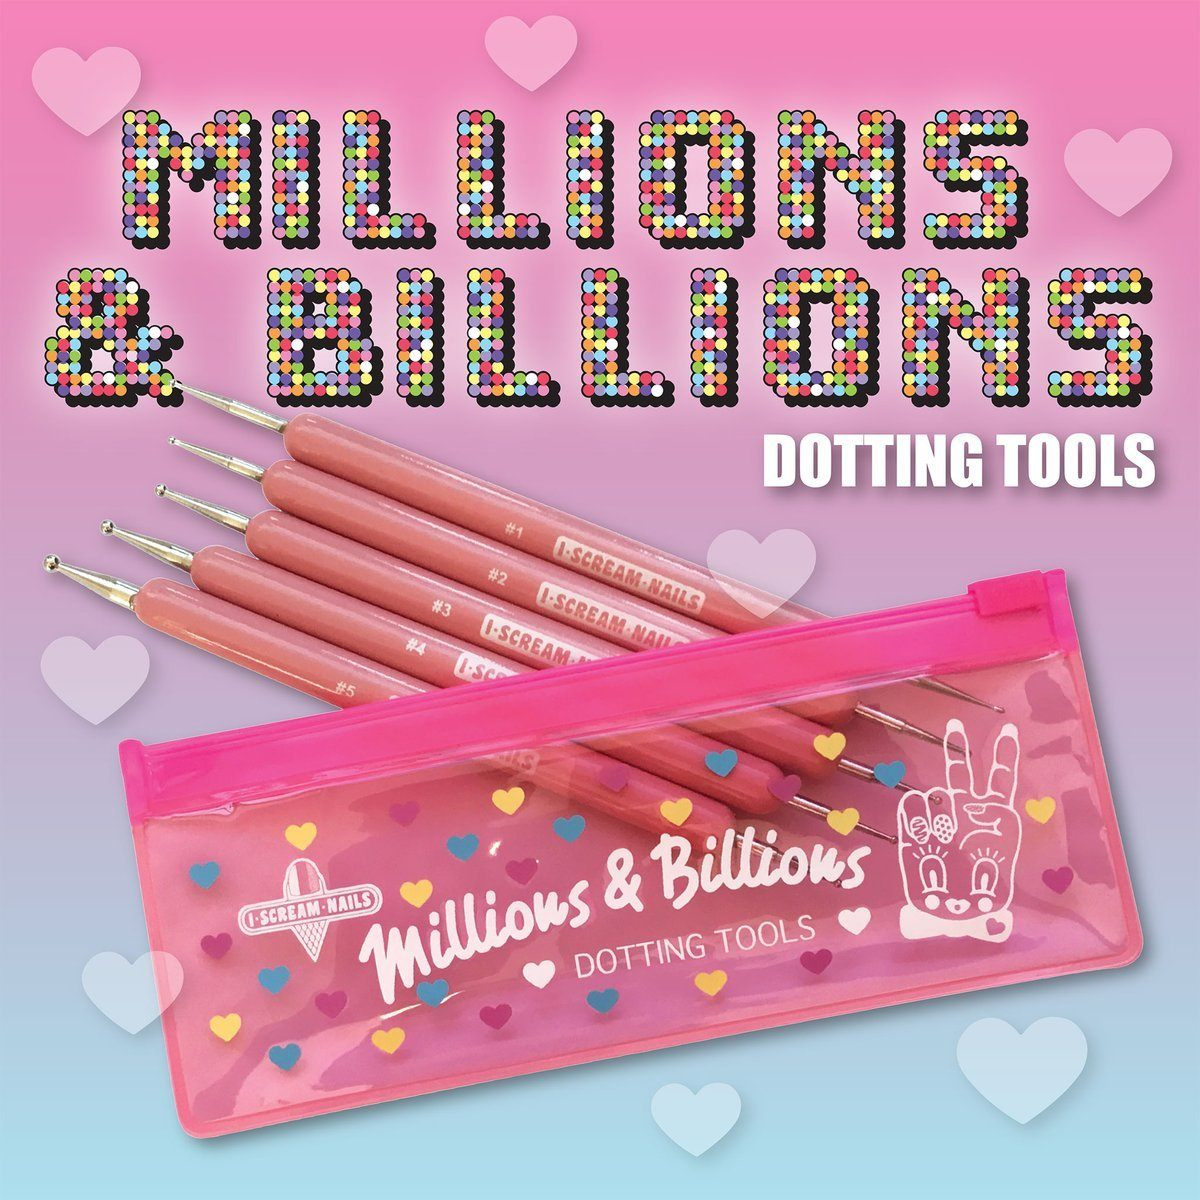 Millions and Billions Dotting Tools